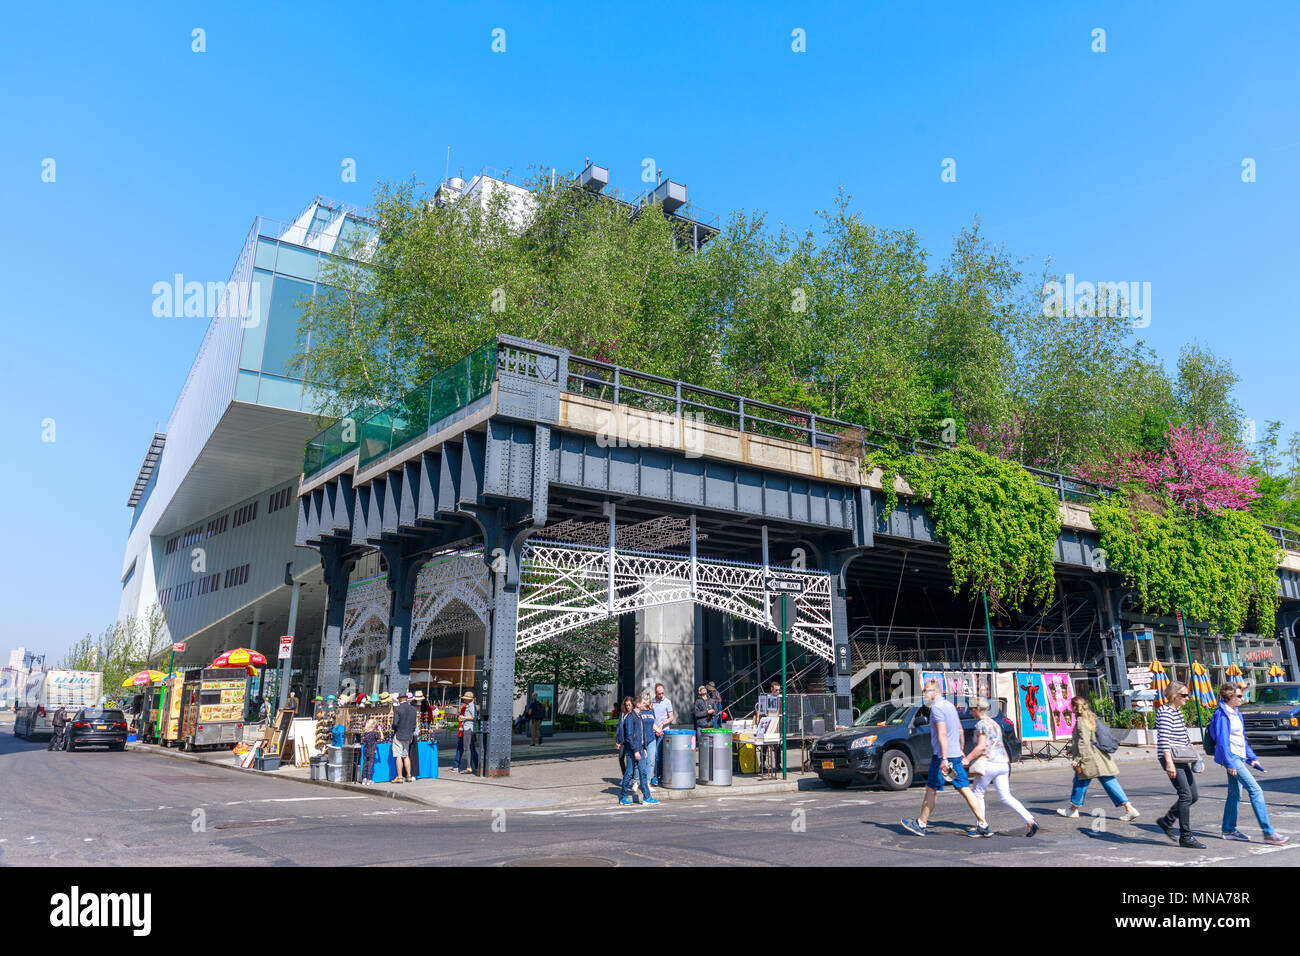 Manhattan, New York City - June 14, 2017 : Scenery of the HIgh Line. Urban public park on an historic freight rail line, New York City, Manhattan. Stock Photo